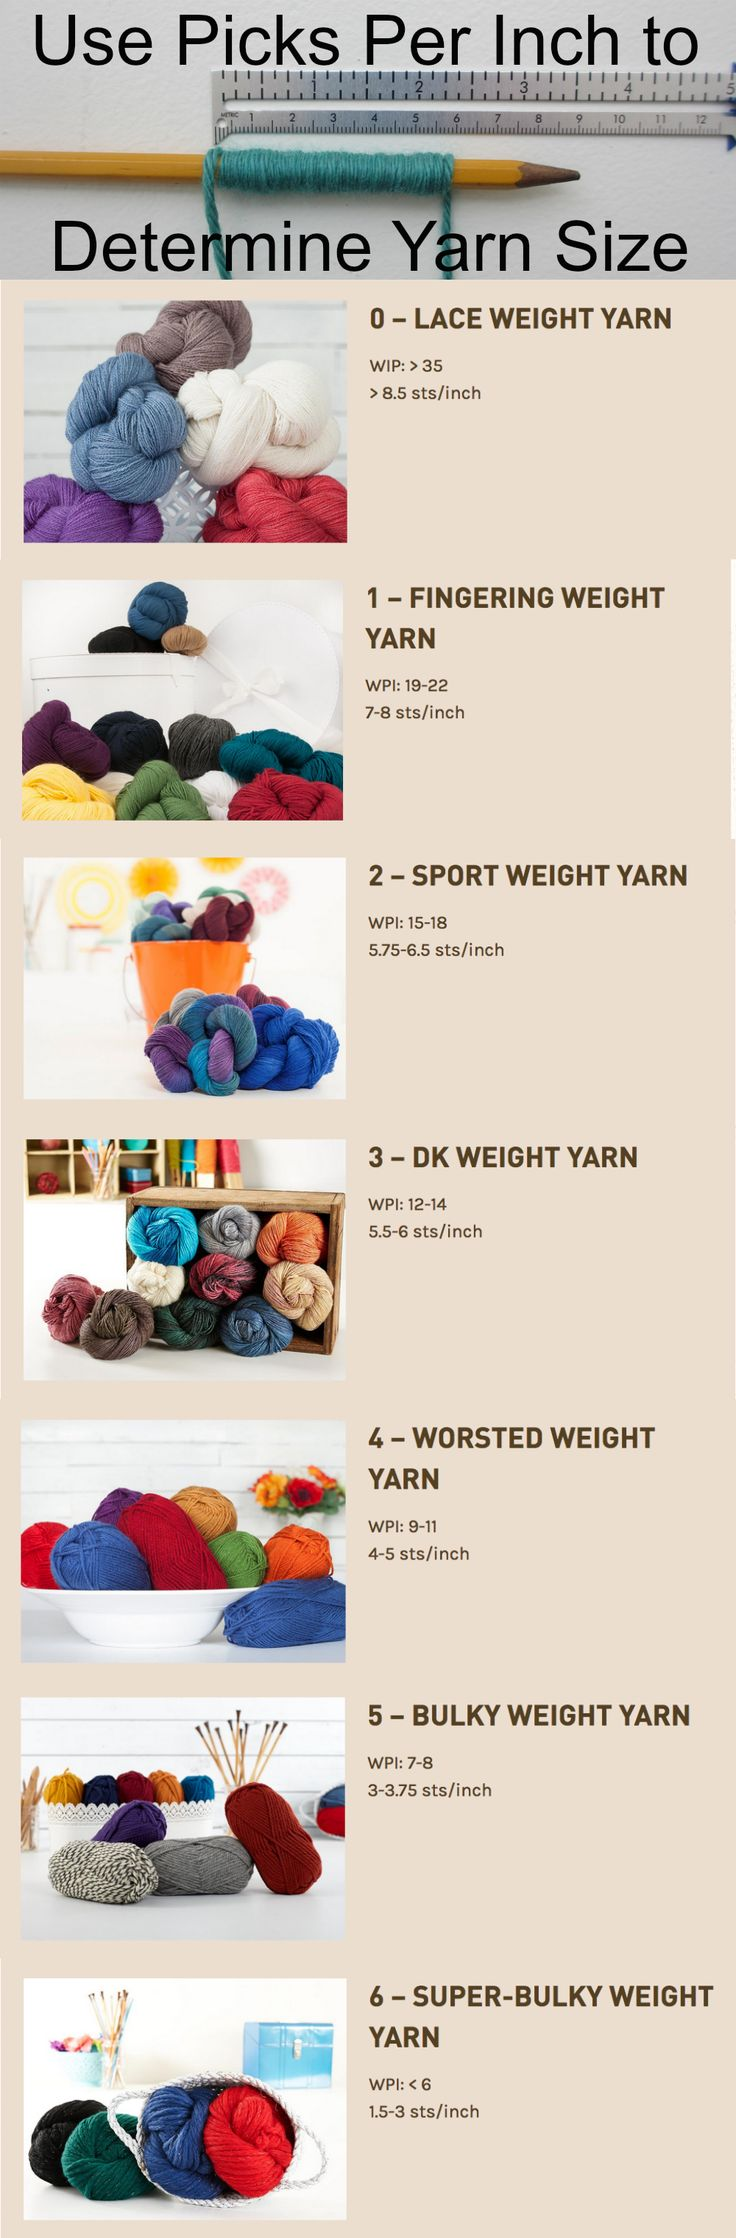 Got yarn with missing labels? Calculate Picks Per Inch to determine the yarn size so you know if you can use it in a pattern you like. 4Ufrom KnittingGuru www.KnittingGuru….